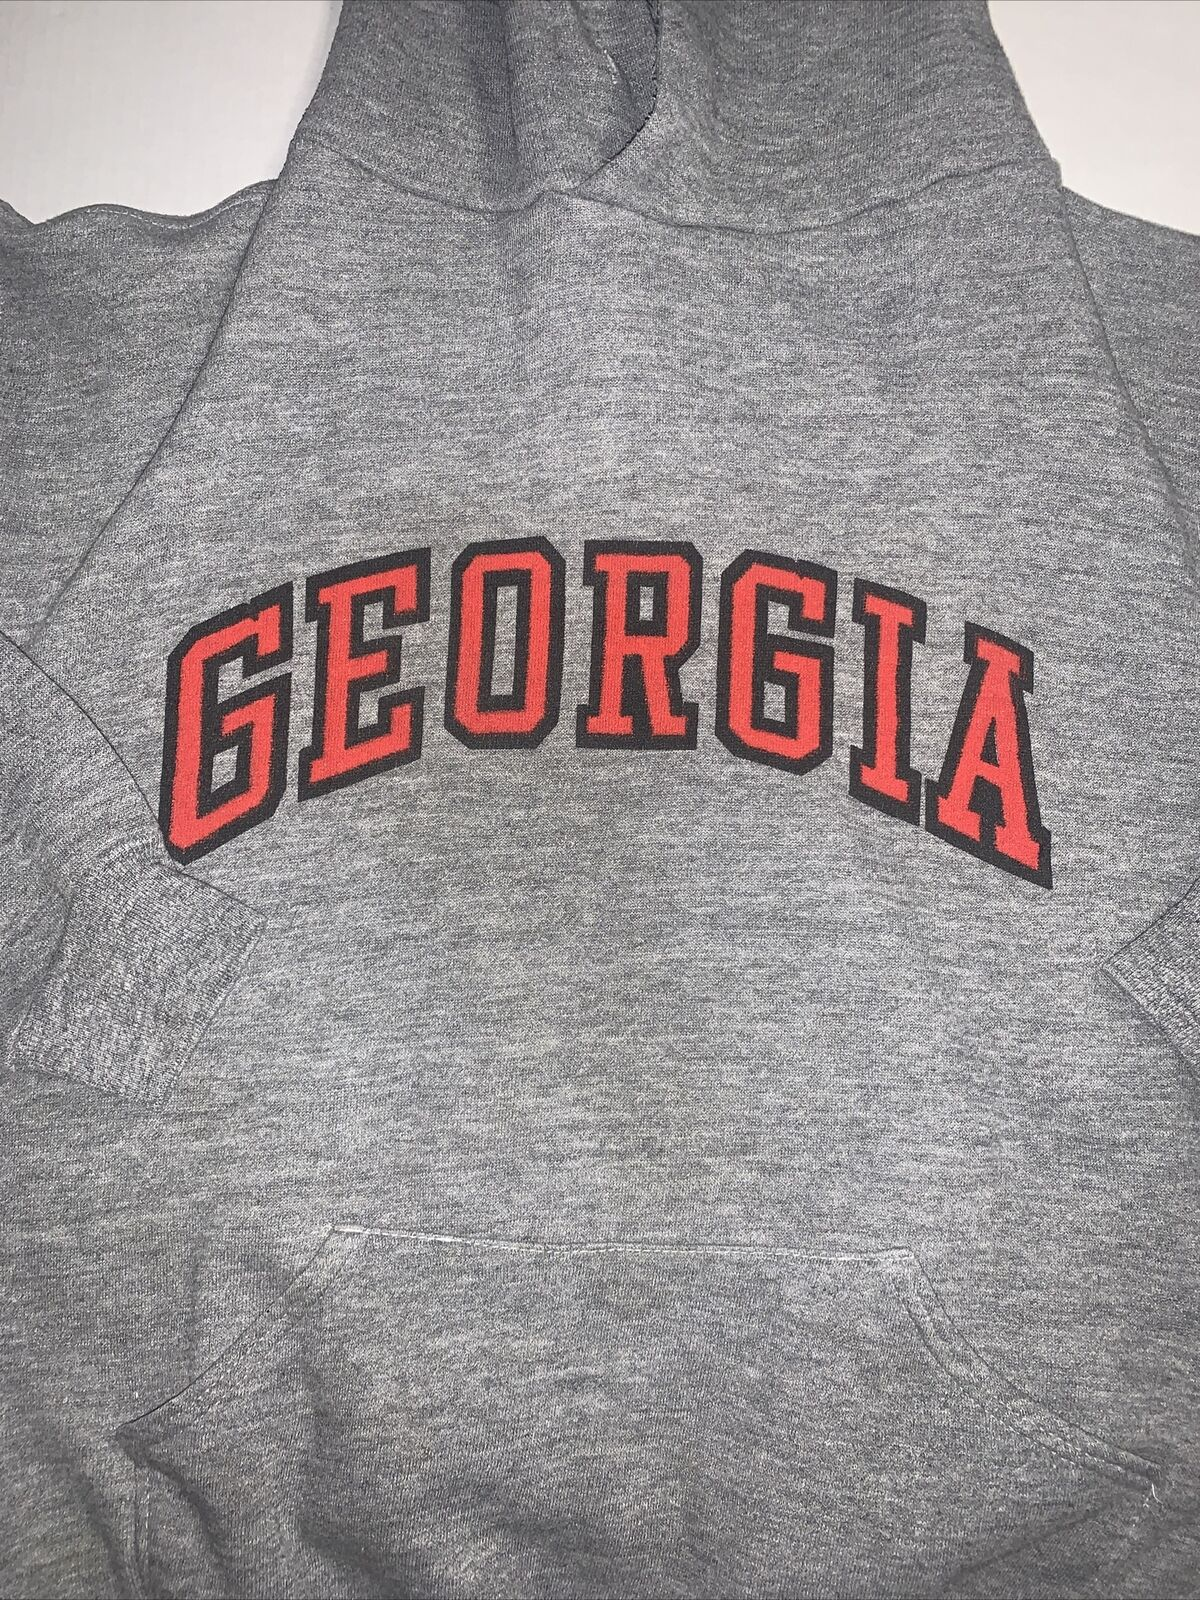 GEORGIA BULLDOGS VINTAGE 70s RUSSELL ATHLETIC COL… - image 2